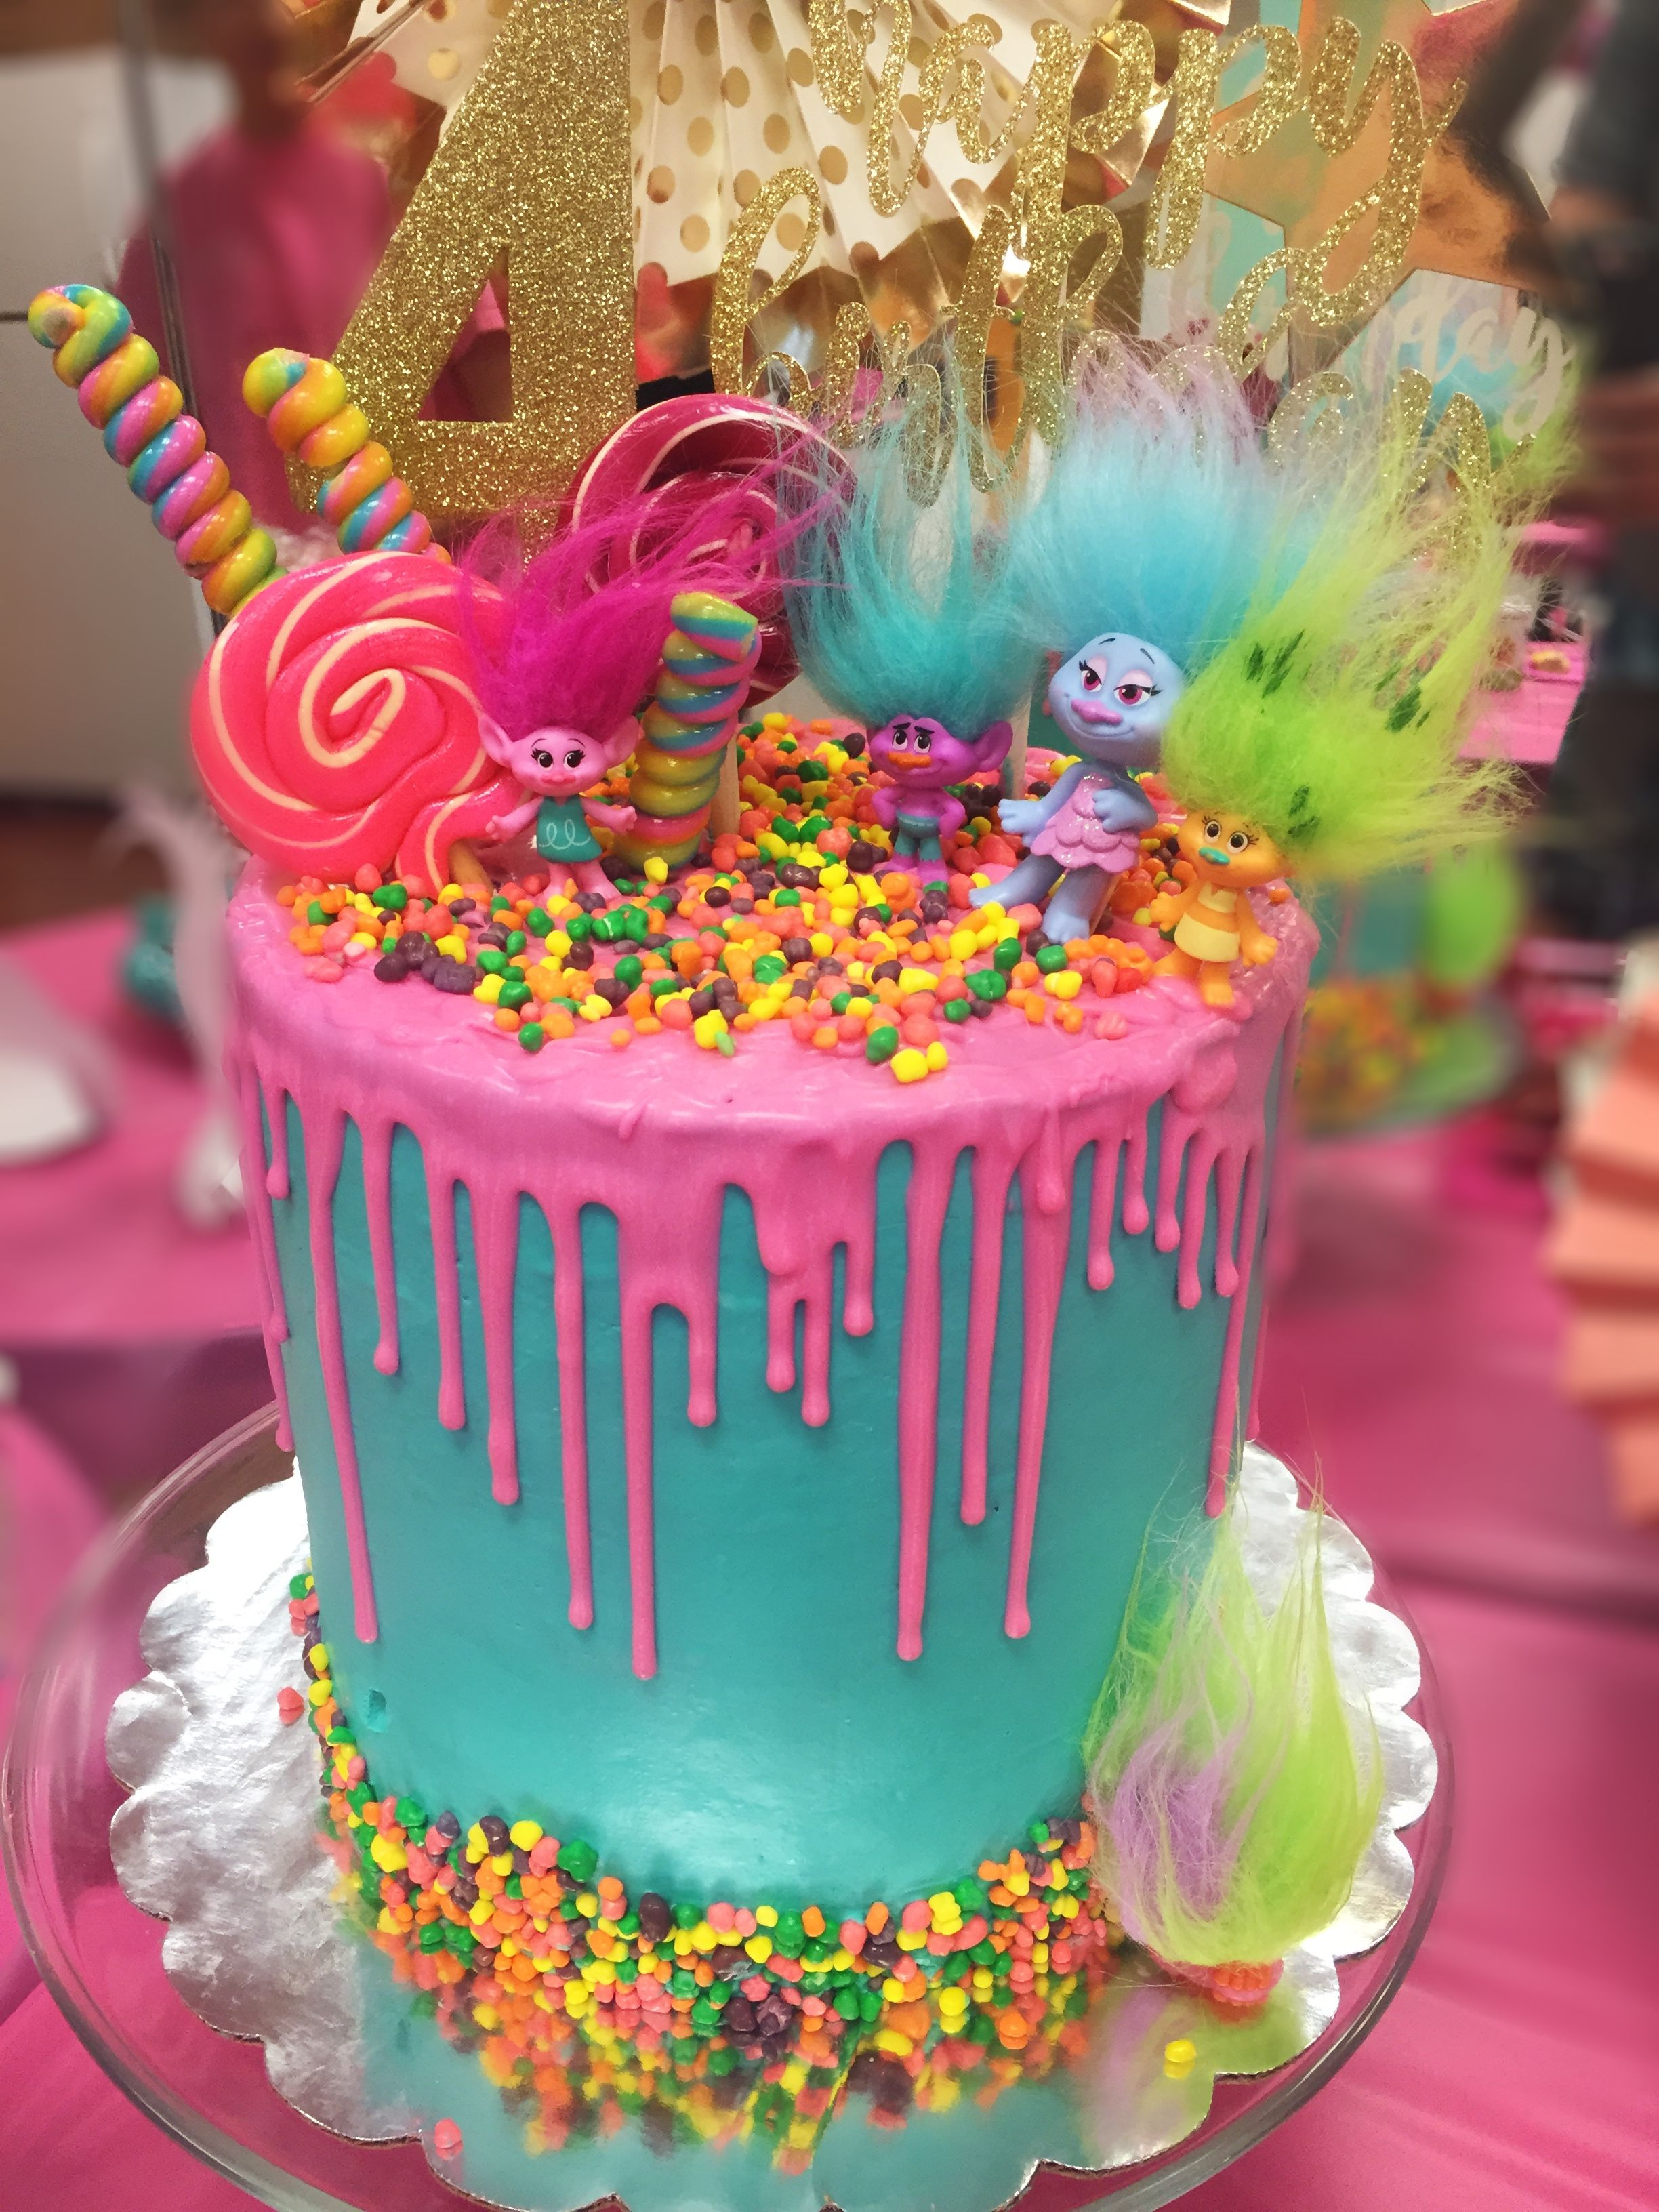 Troll birthday party cake troll birthday pinterest trolls birthday party birthdays and cake - Th birthday themes ideas ...